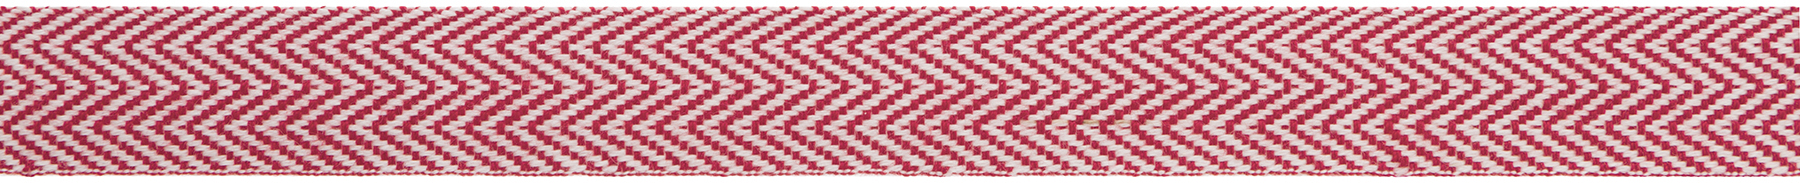 Chevron Twill Red White